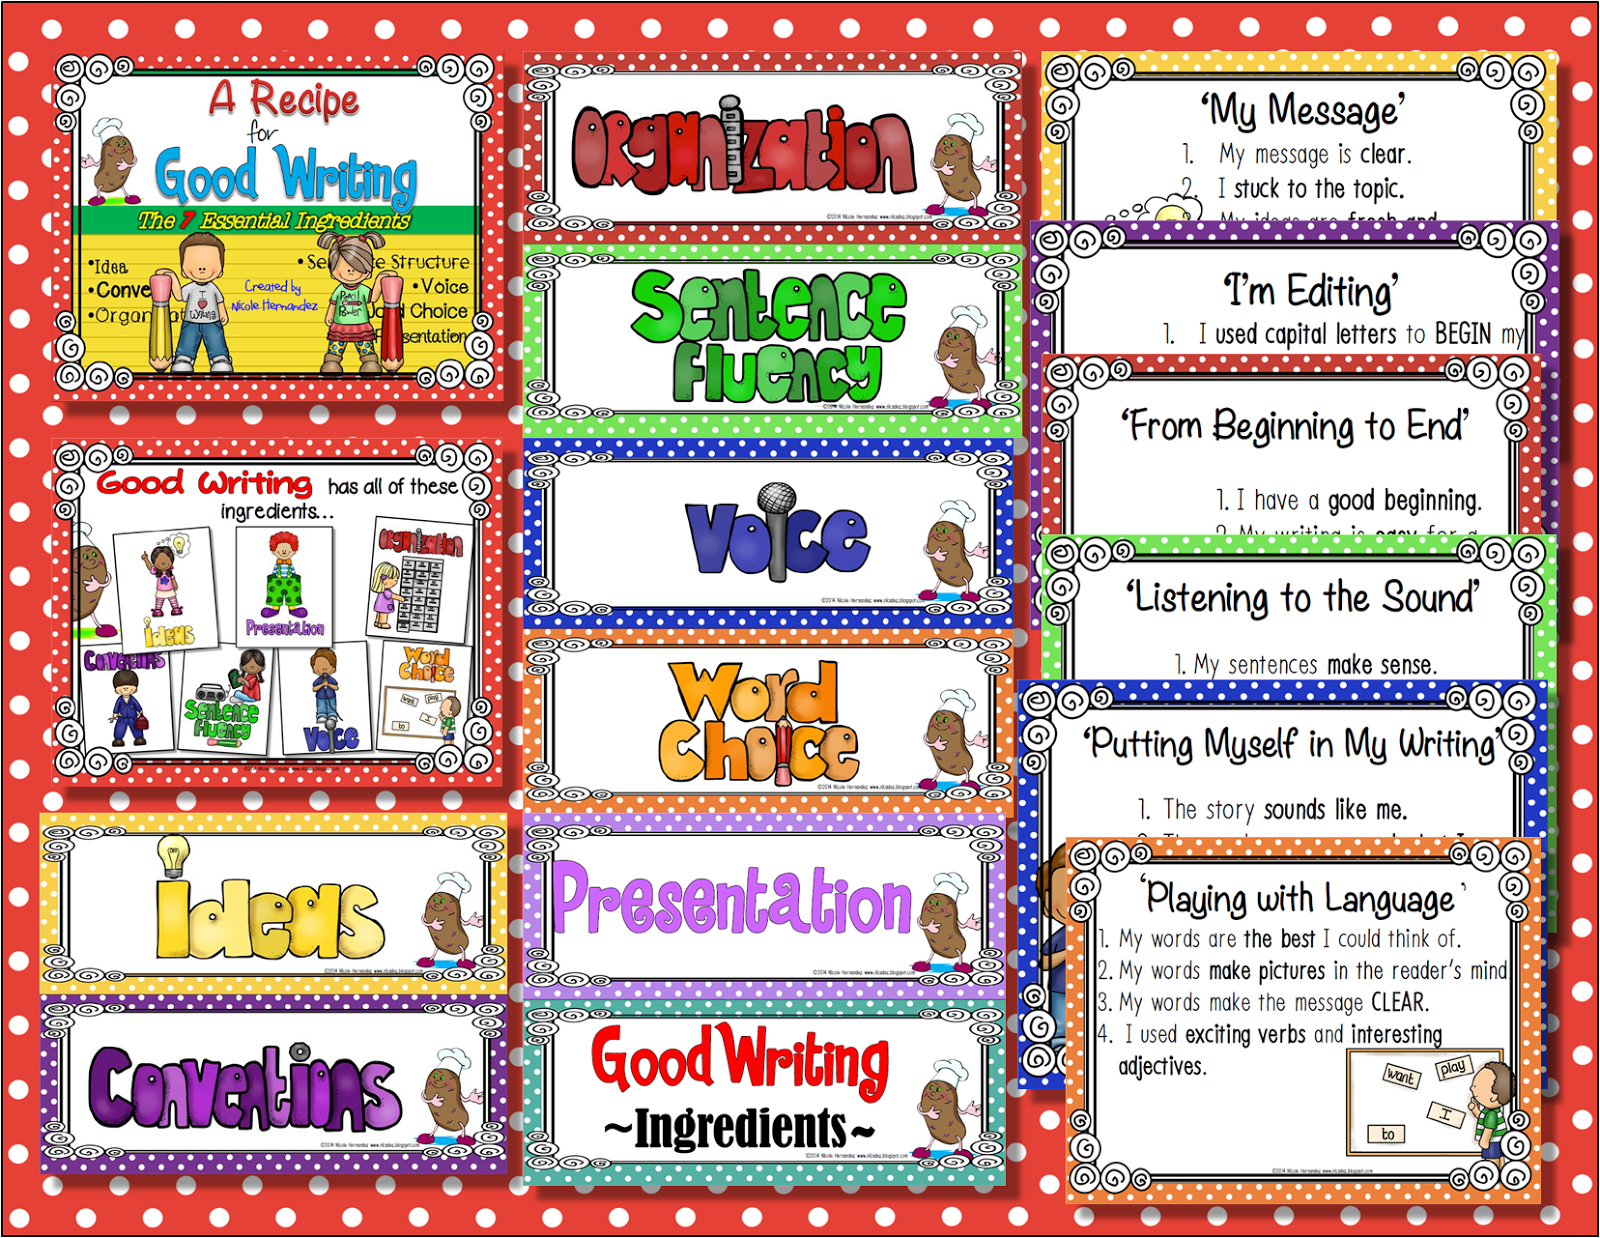 http://www.teacherspayteachers.com/Product/A-Recipe-for-Good-Writing-The-7-Essential-Ingredients--1184482